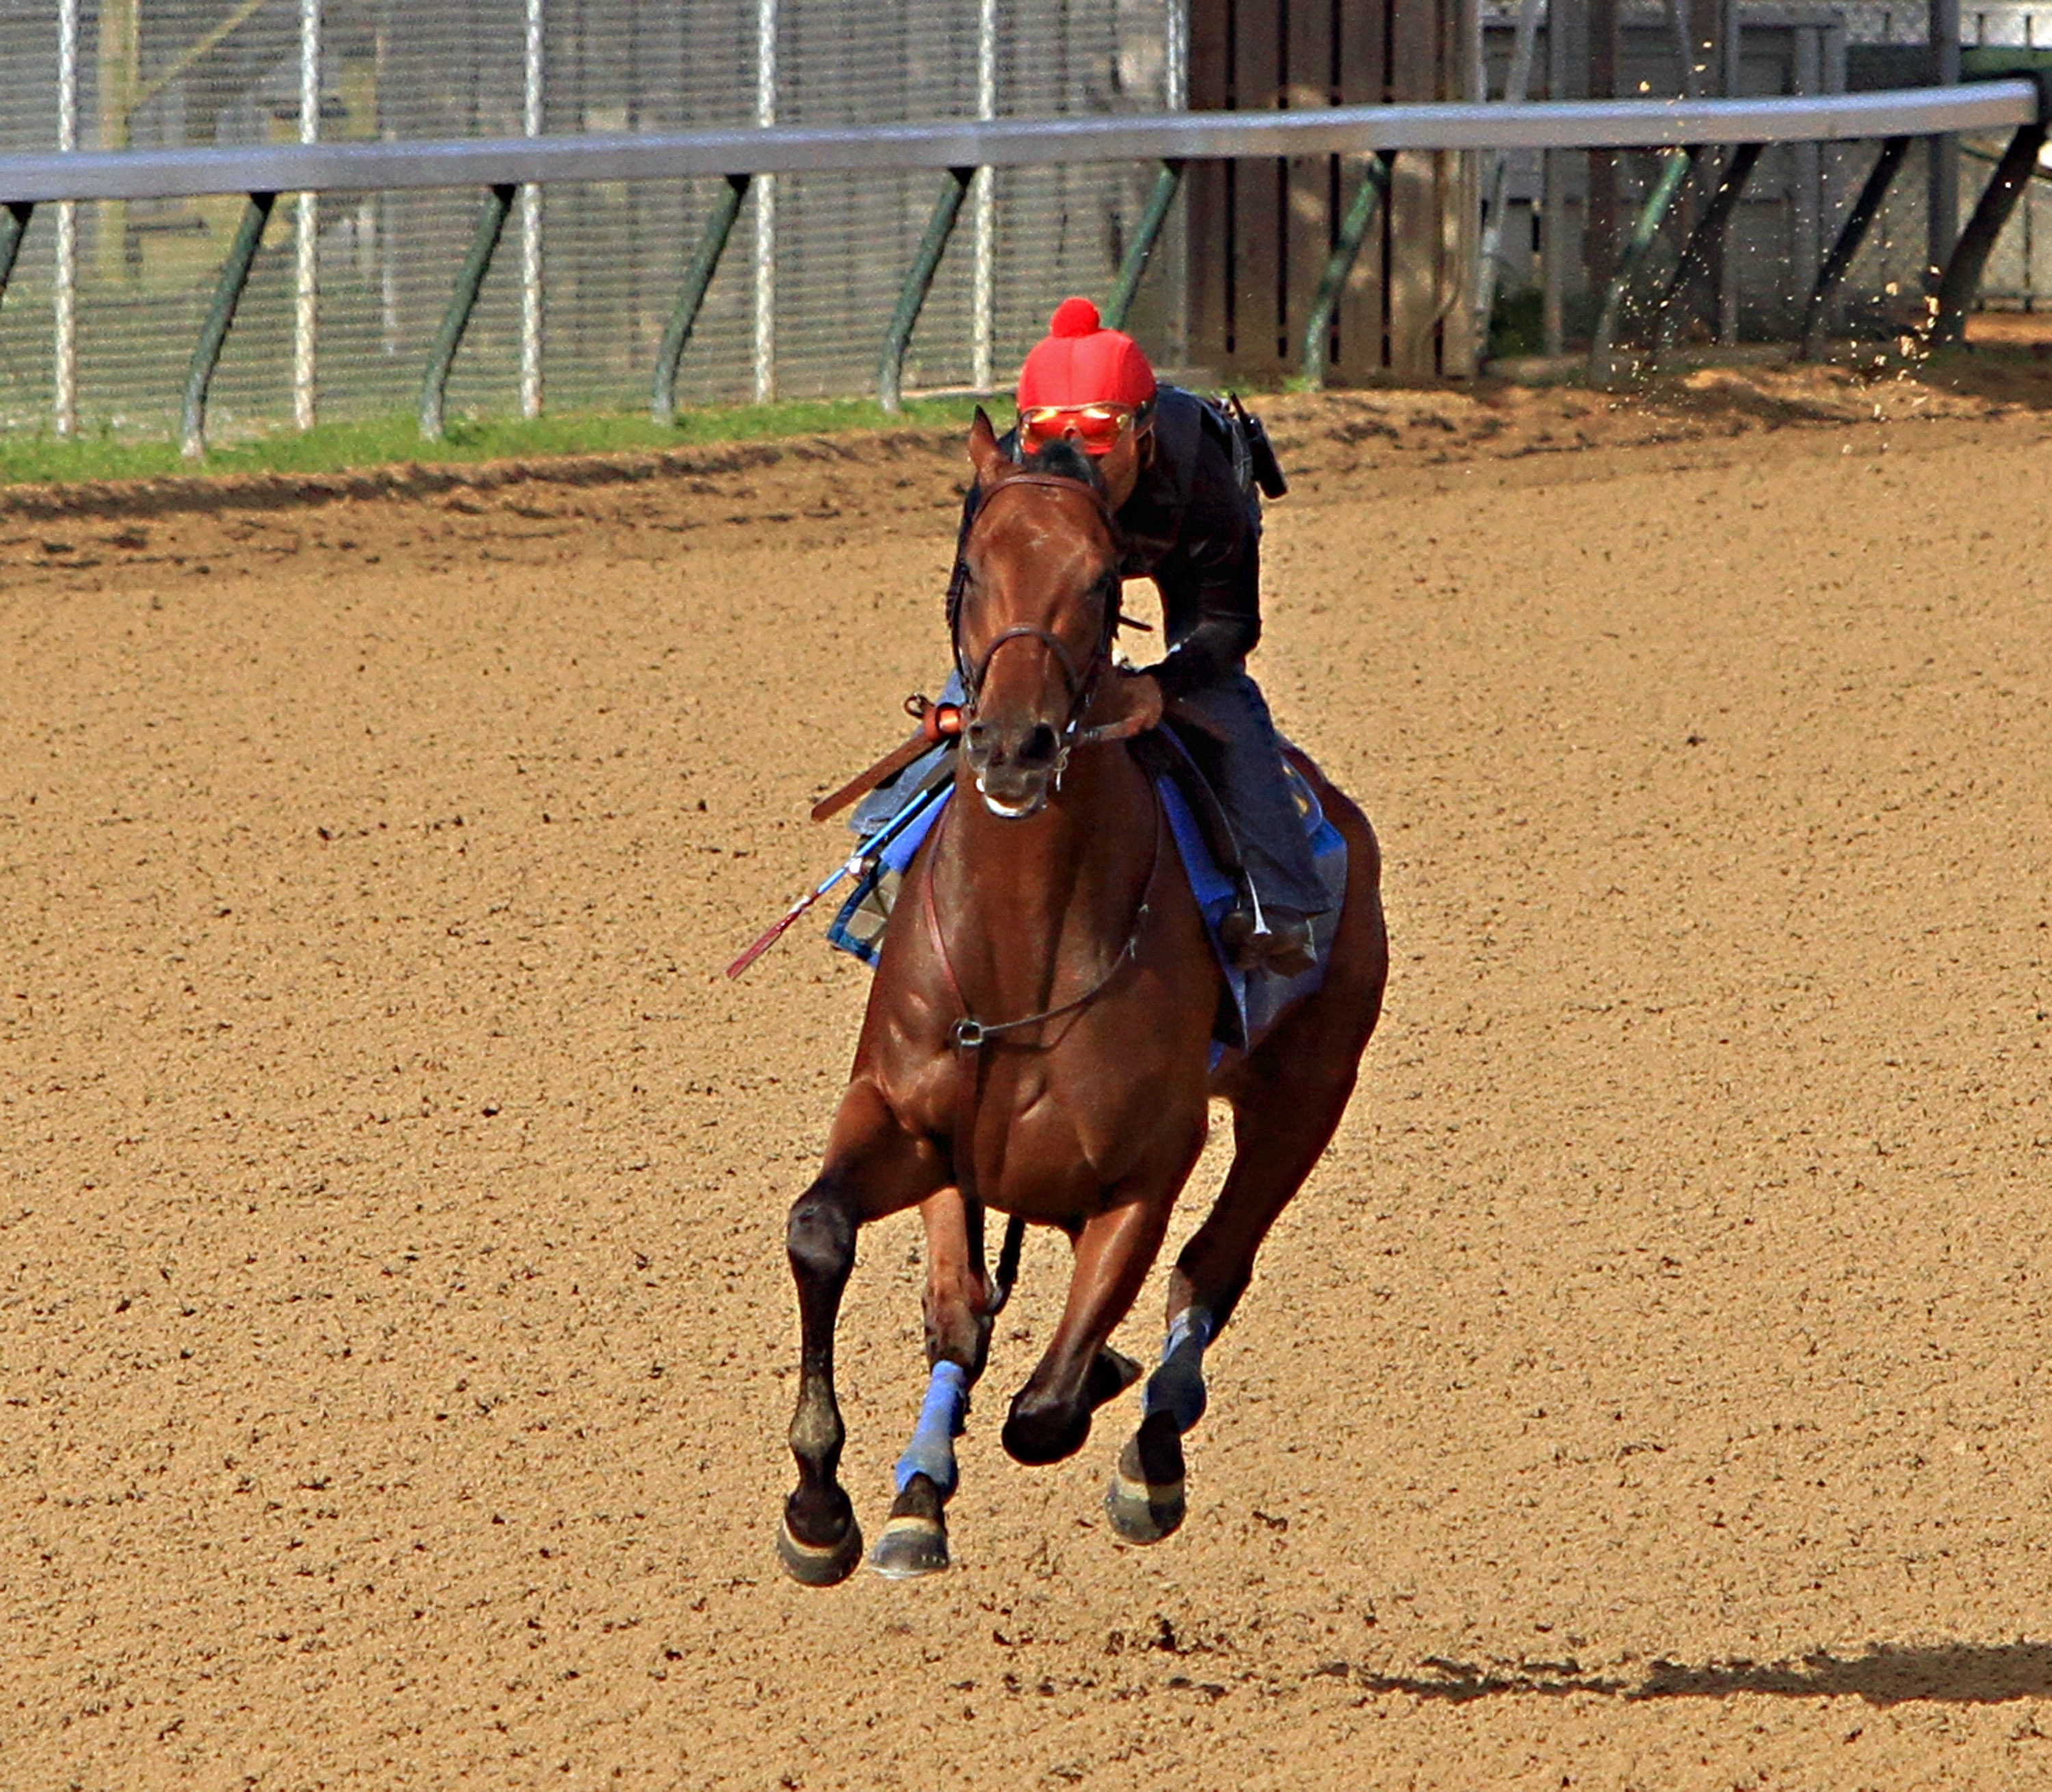 Ridden by jockey Martin Garcia, Kentucky Derby and Preakness Stakes winner American Pharoah begins a timed workout at Churchill Downs in Louisville, Ky., Tuesday, May 26, 2015. American Pharoah is preparing for a start in the Belmont Stakes in New York on